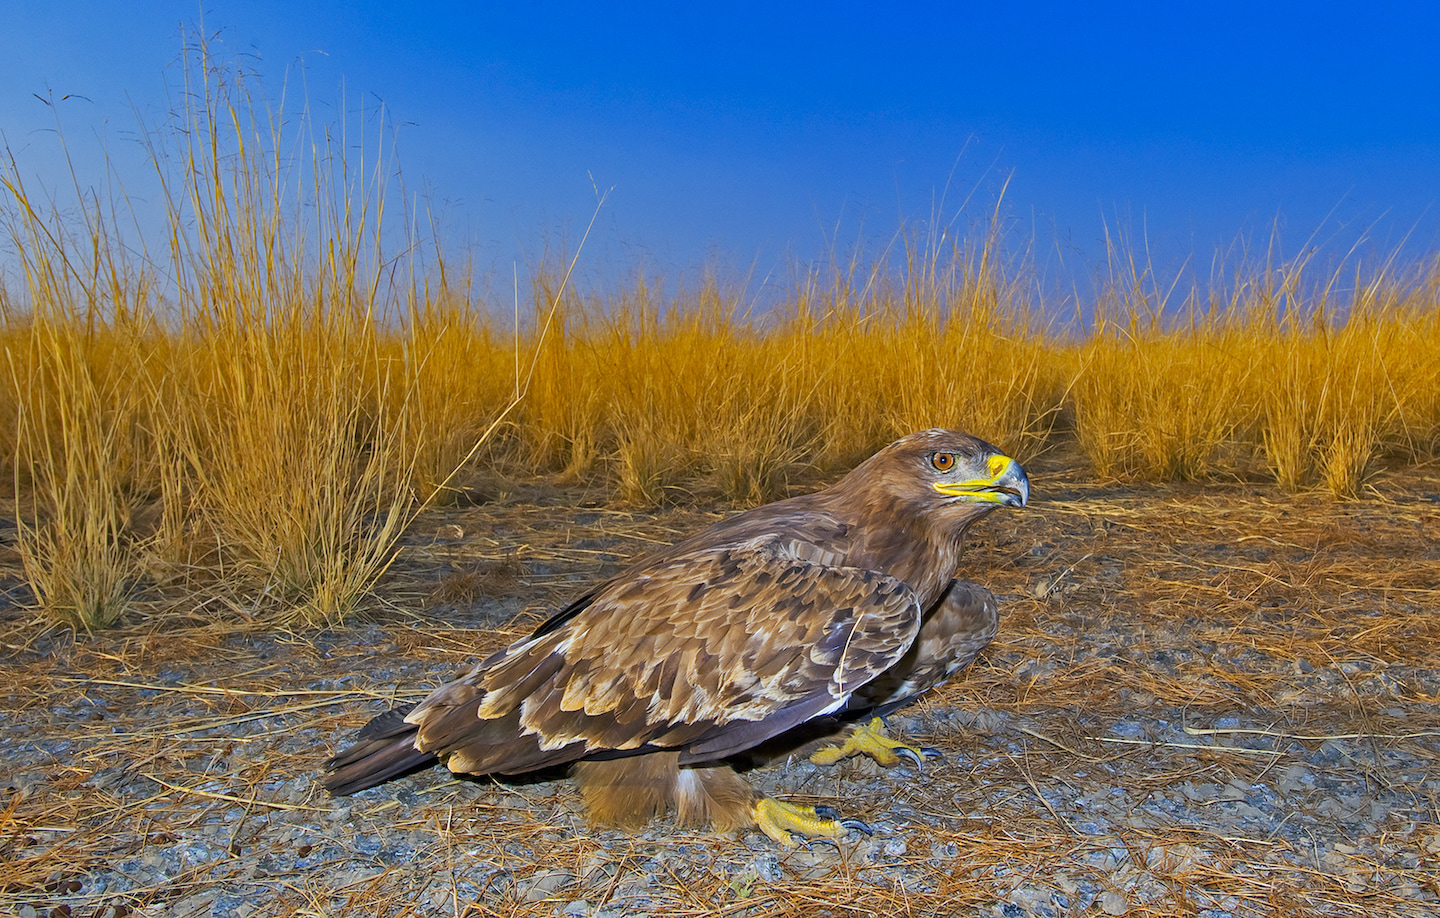 Another purely migratory visitor to the Desert National Park is the steppe eagle. The birds arrive around November every year, from Mongolia, Russia, and northern China, and linger until March. Though it is much warmer in India compared to icy Siberia, the Thar Desert can get cold in winter. In December, temperatures around Jaisalmer often dip to as low as two degrees Celsius. Photo: Dhritiman Mukherjee